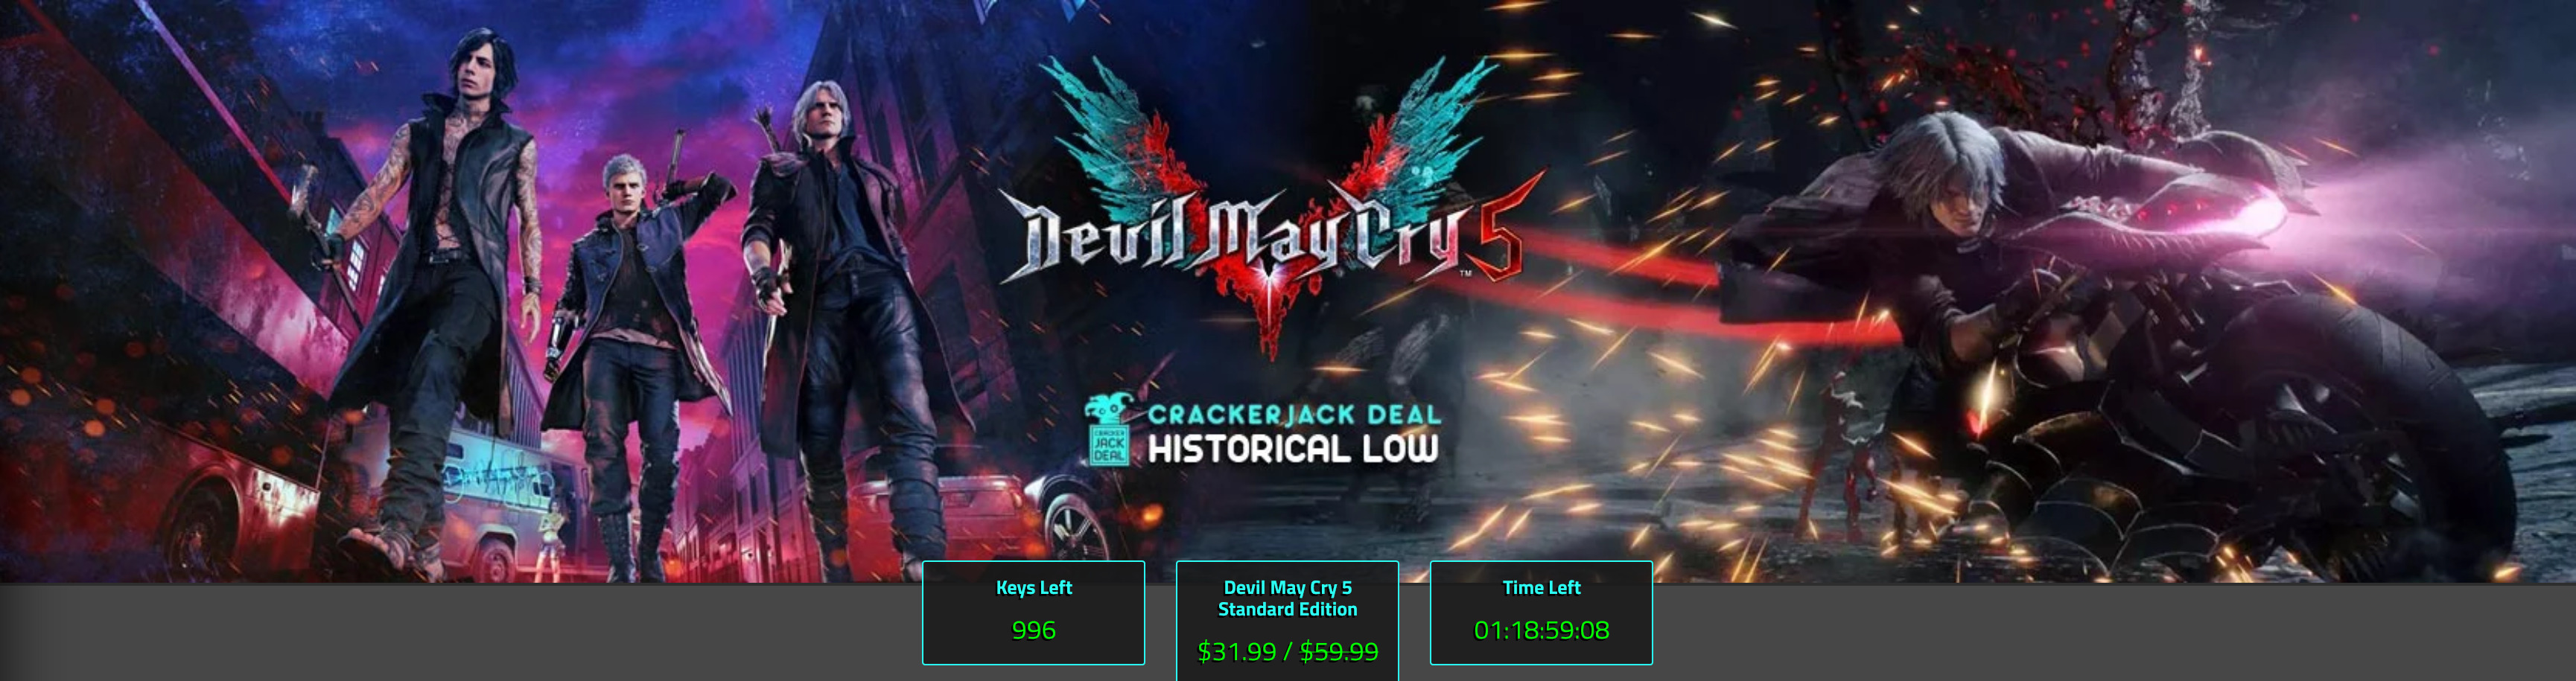 Screenshot_2019-06-04 Devil May Cry 5 at a demoniacal low price .jpg